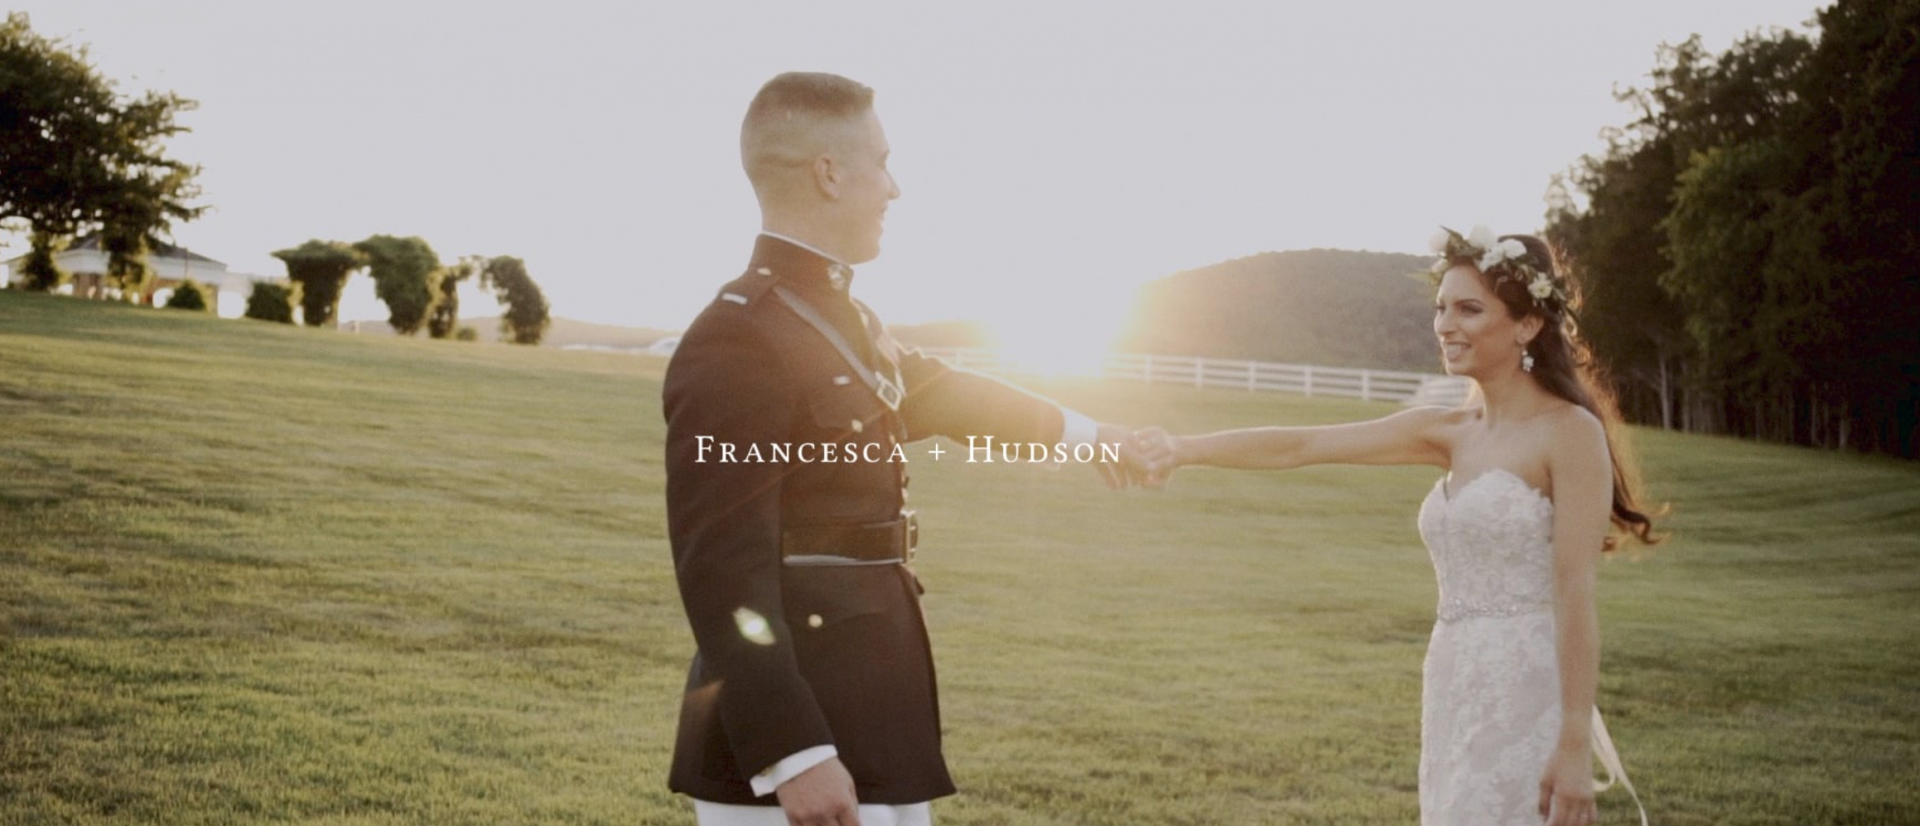 Francesca + Hudson | Keswick, Virginia | Castle Hill Cider